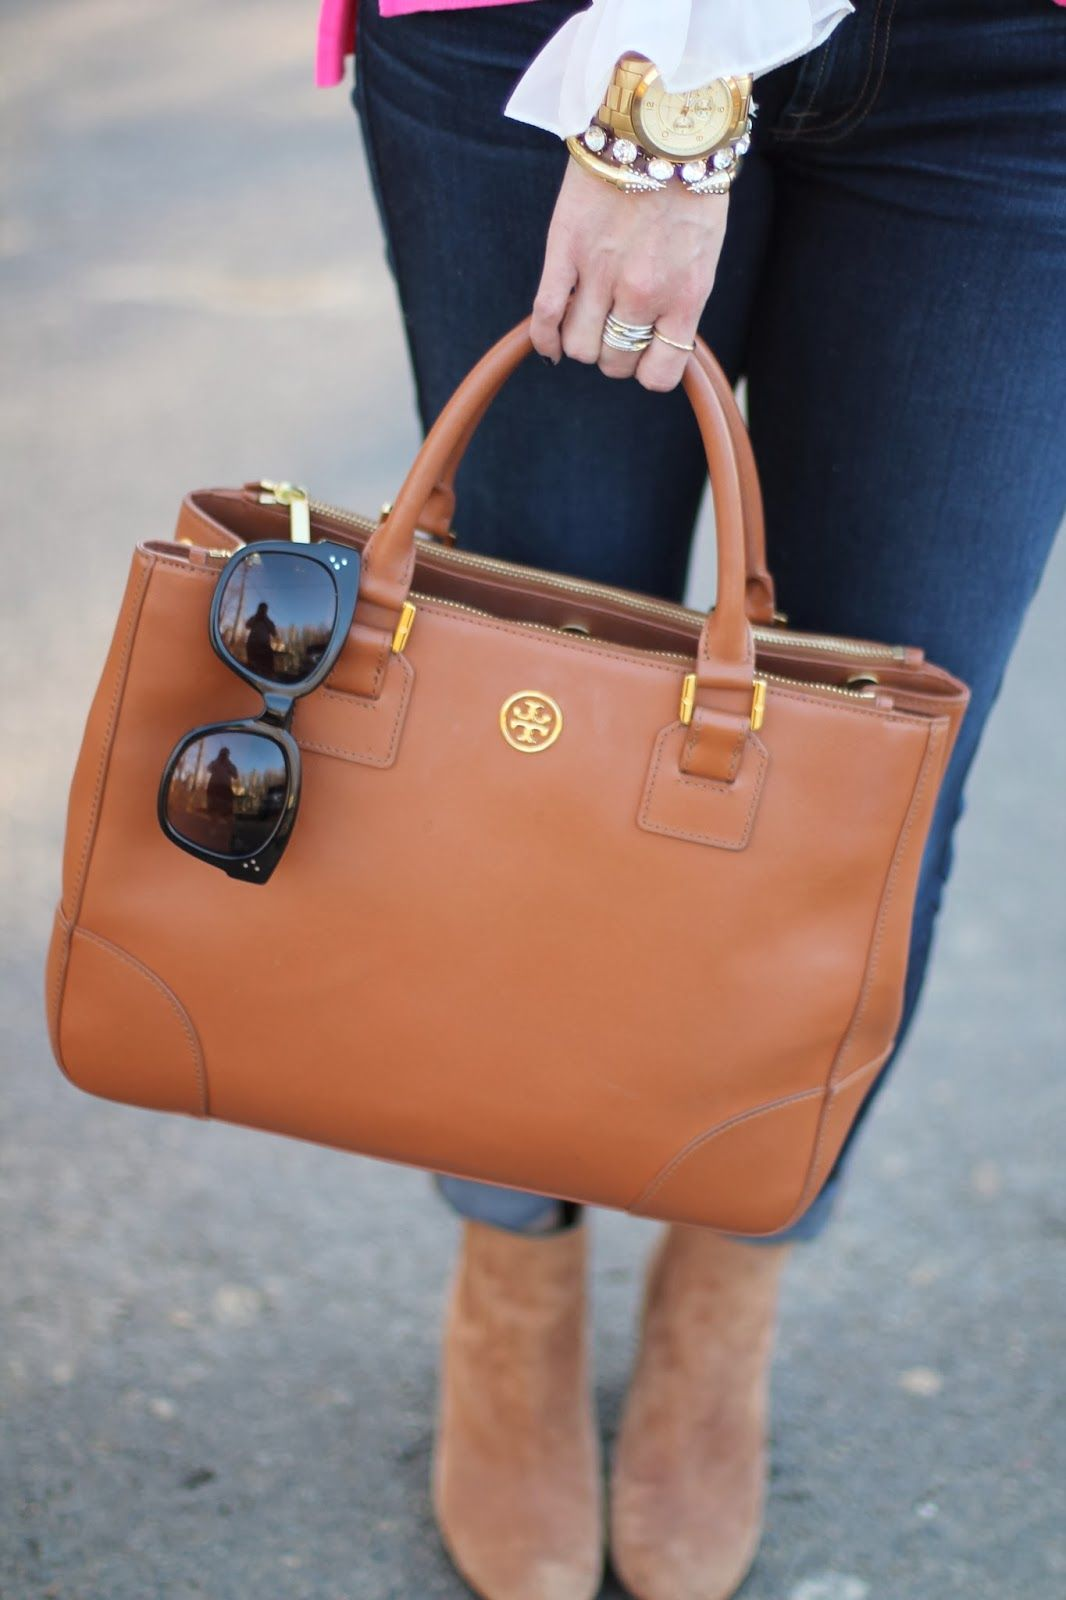 34665f55e2ad Tory Burch is a brand name that people associate that because you own one  you have money. It a per-conceived idea.